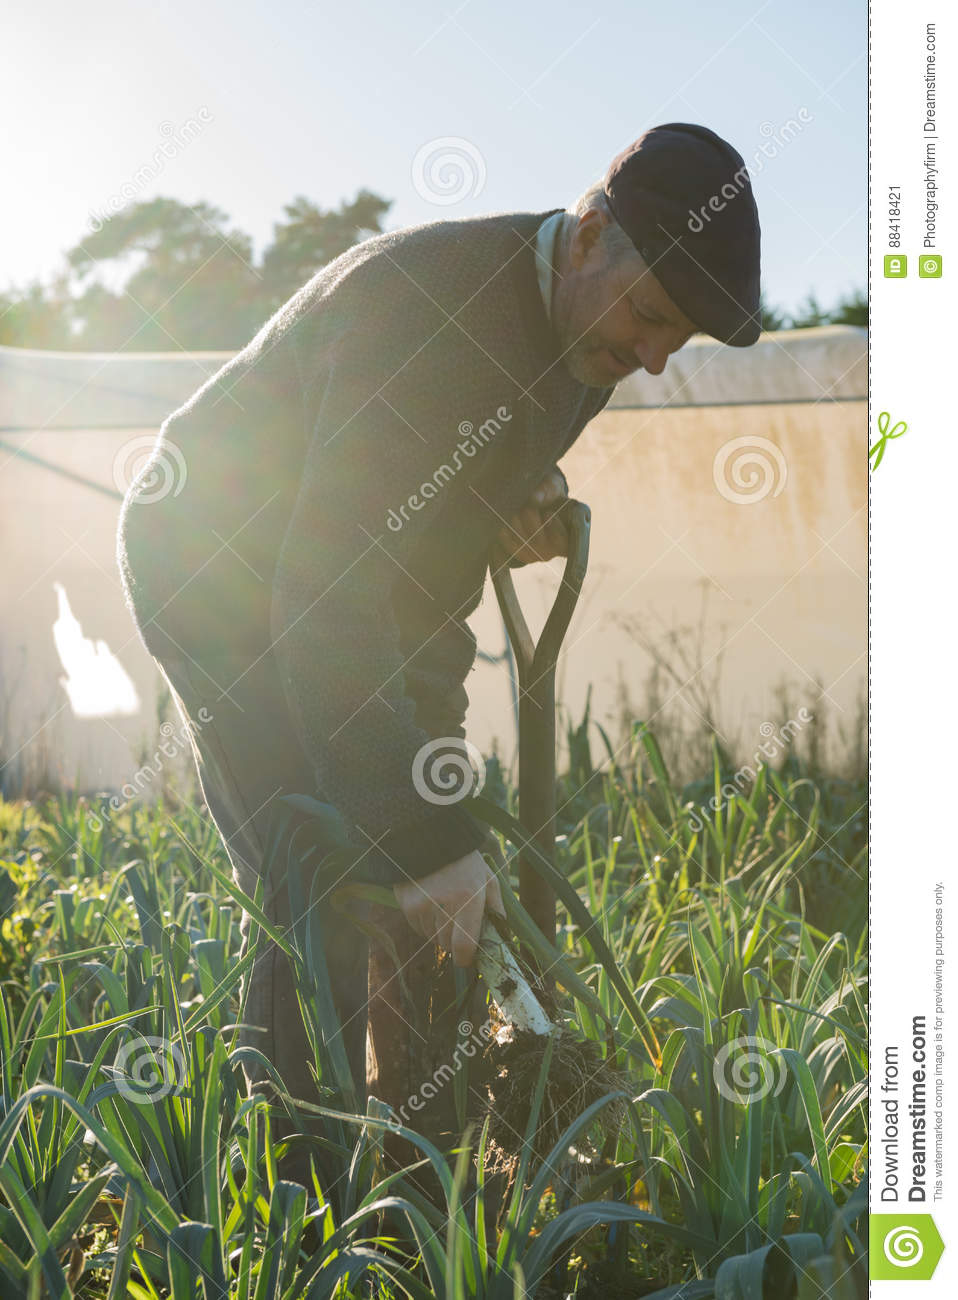 Man Holding Pitchfork While Pulling Leek From Ground Stock Image - Image of plant. root: 88418421